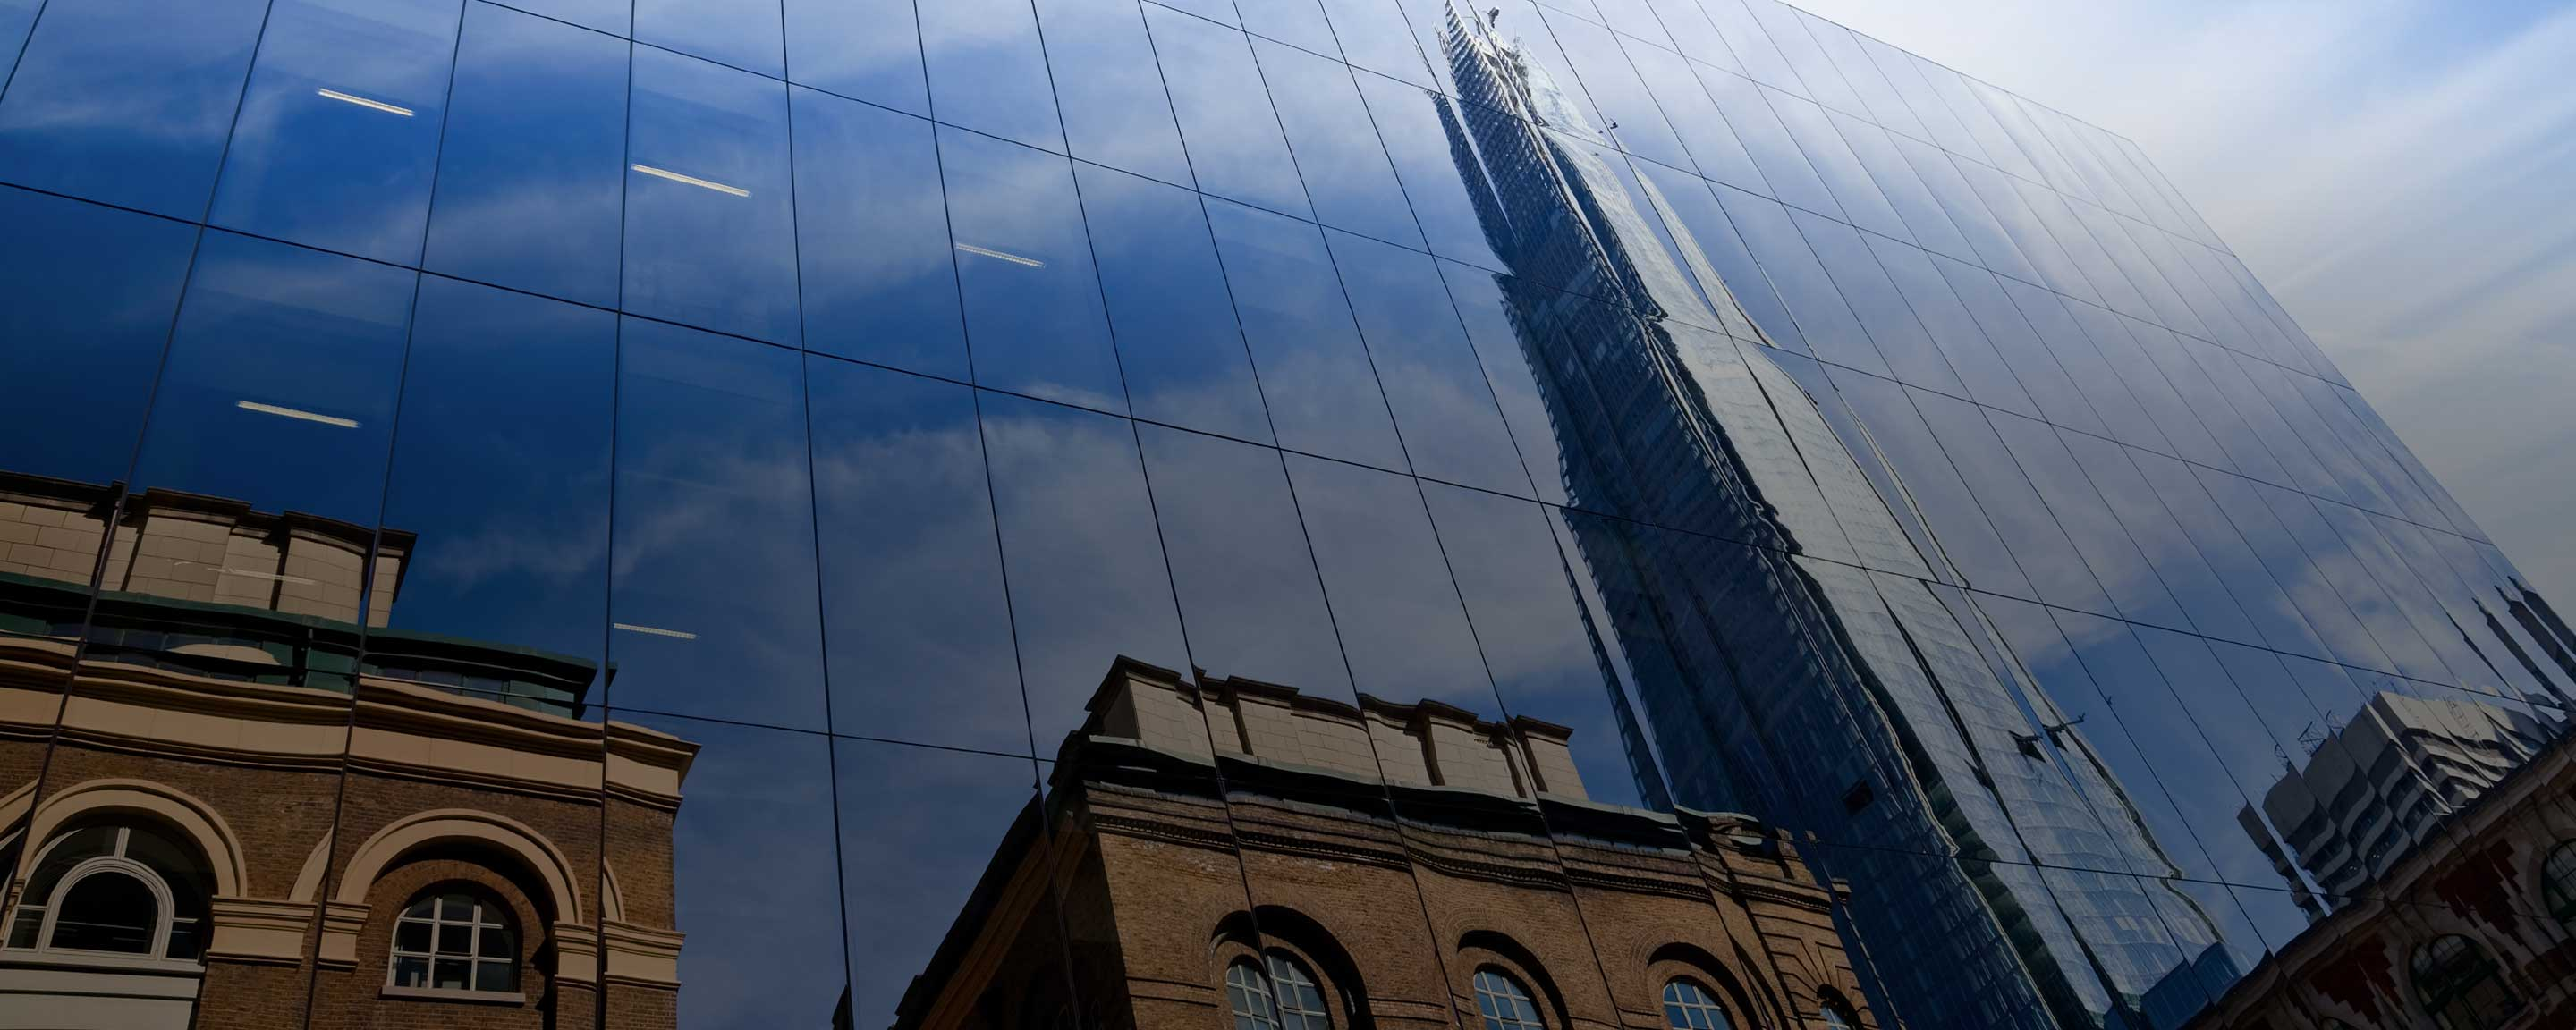 View of The Shard in building reflection